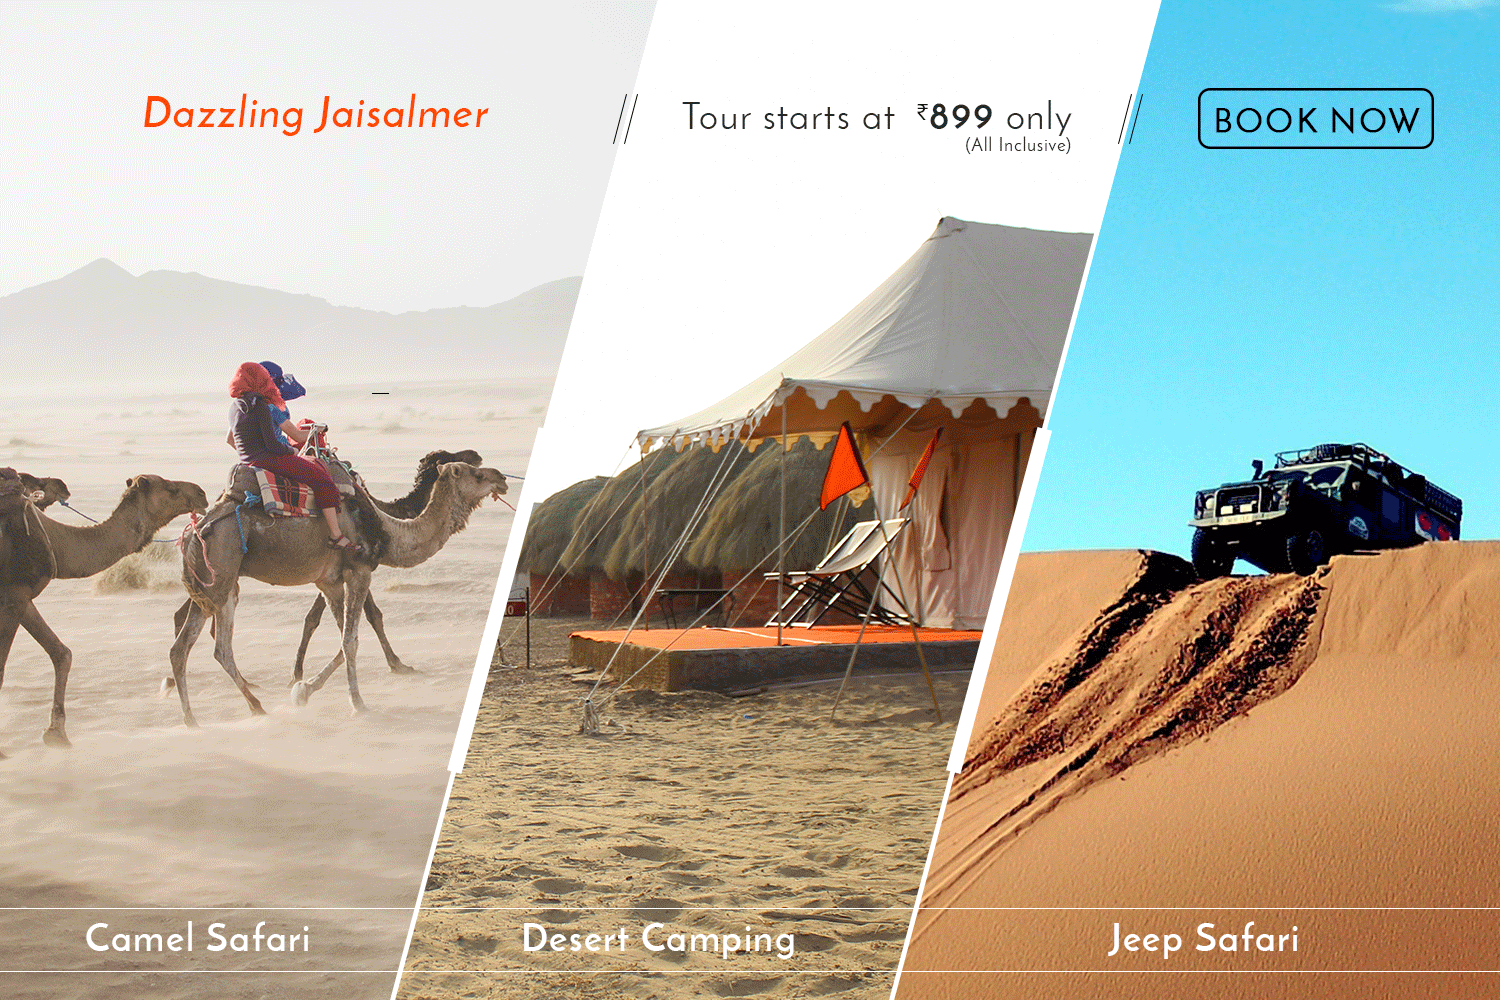 Awararahi-Jaisalmer-packages-promo